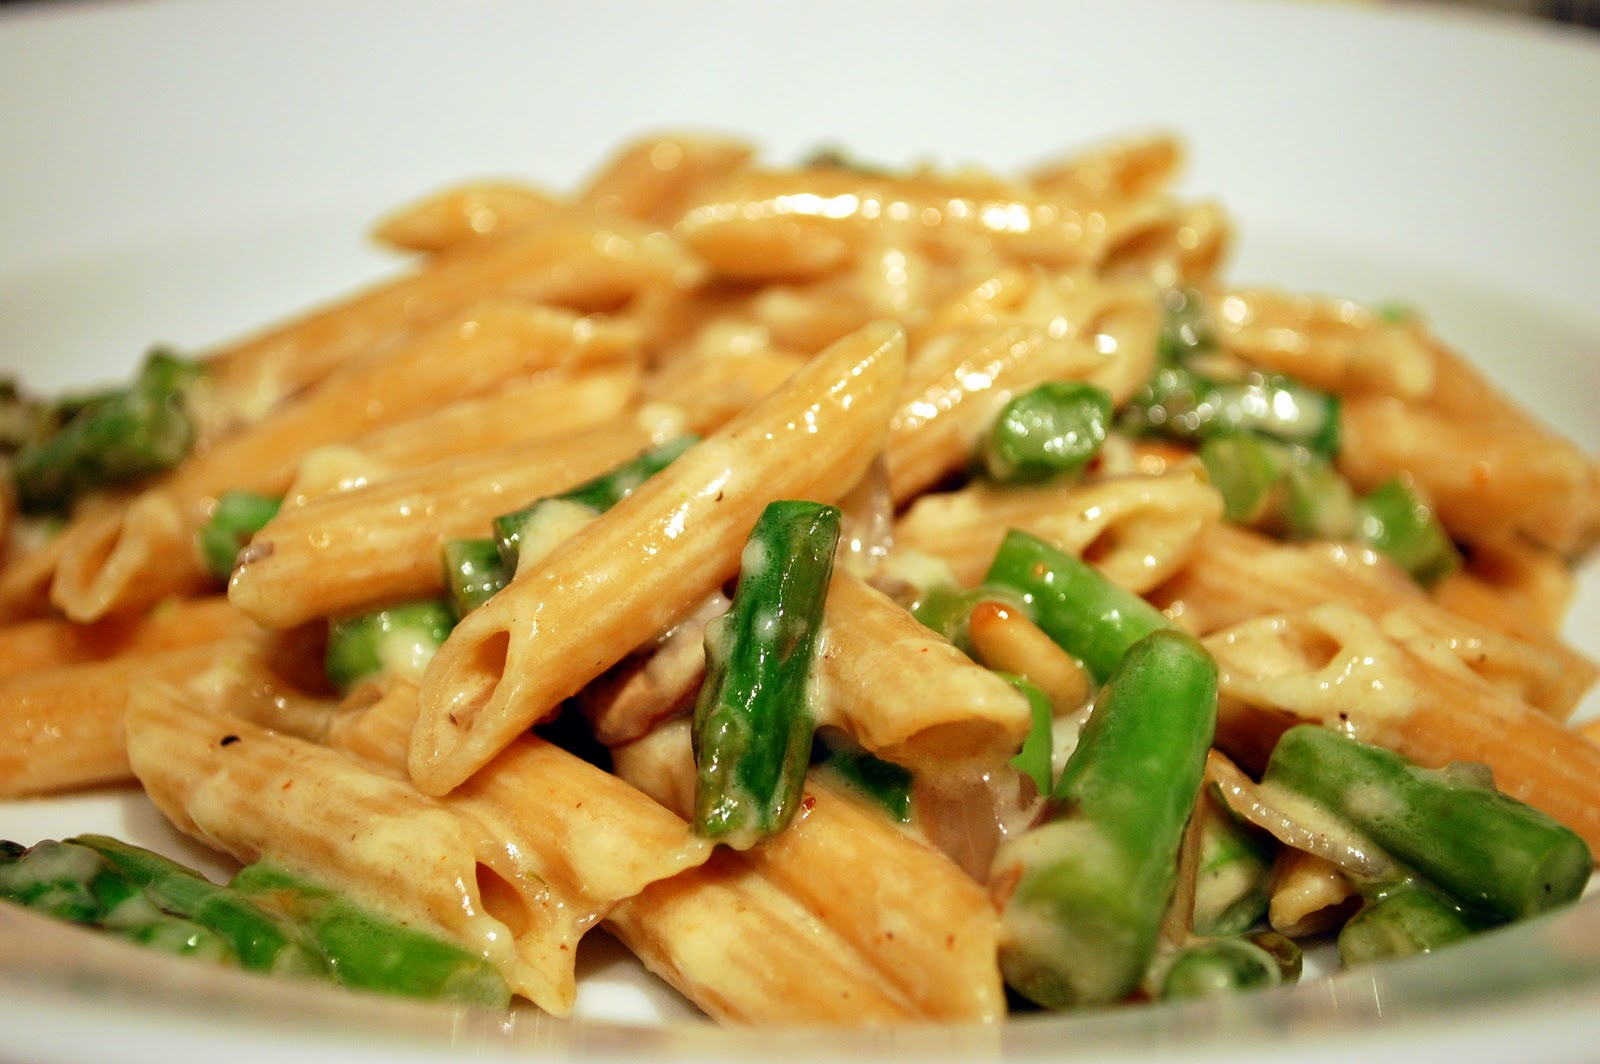 The Skillet Takes: Penne Pasta with Asparagus and Pine Nuts